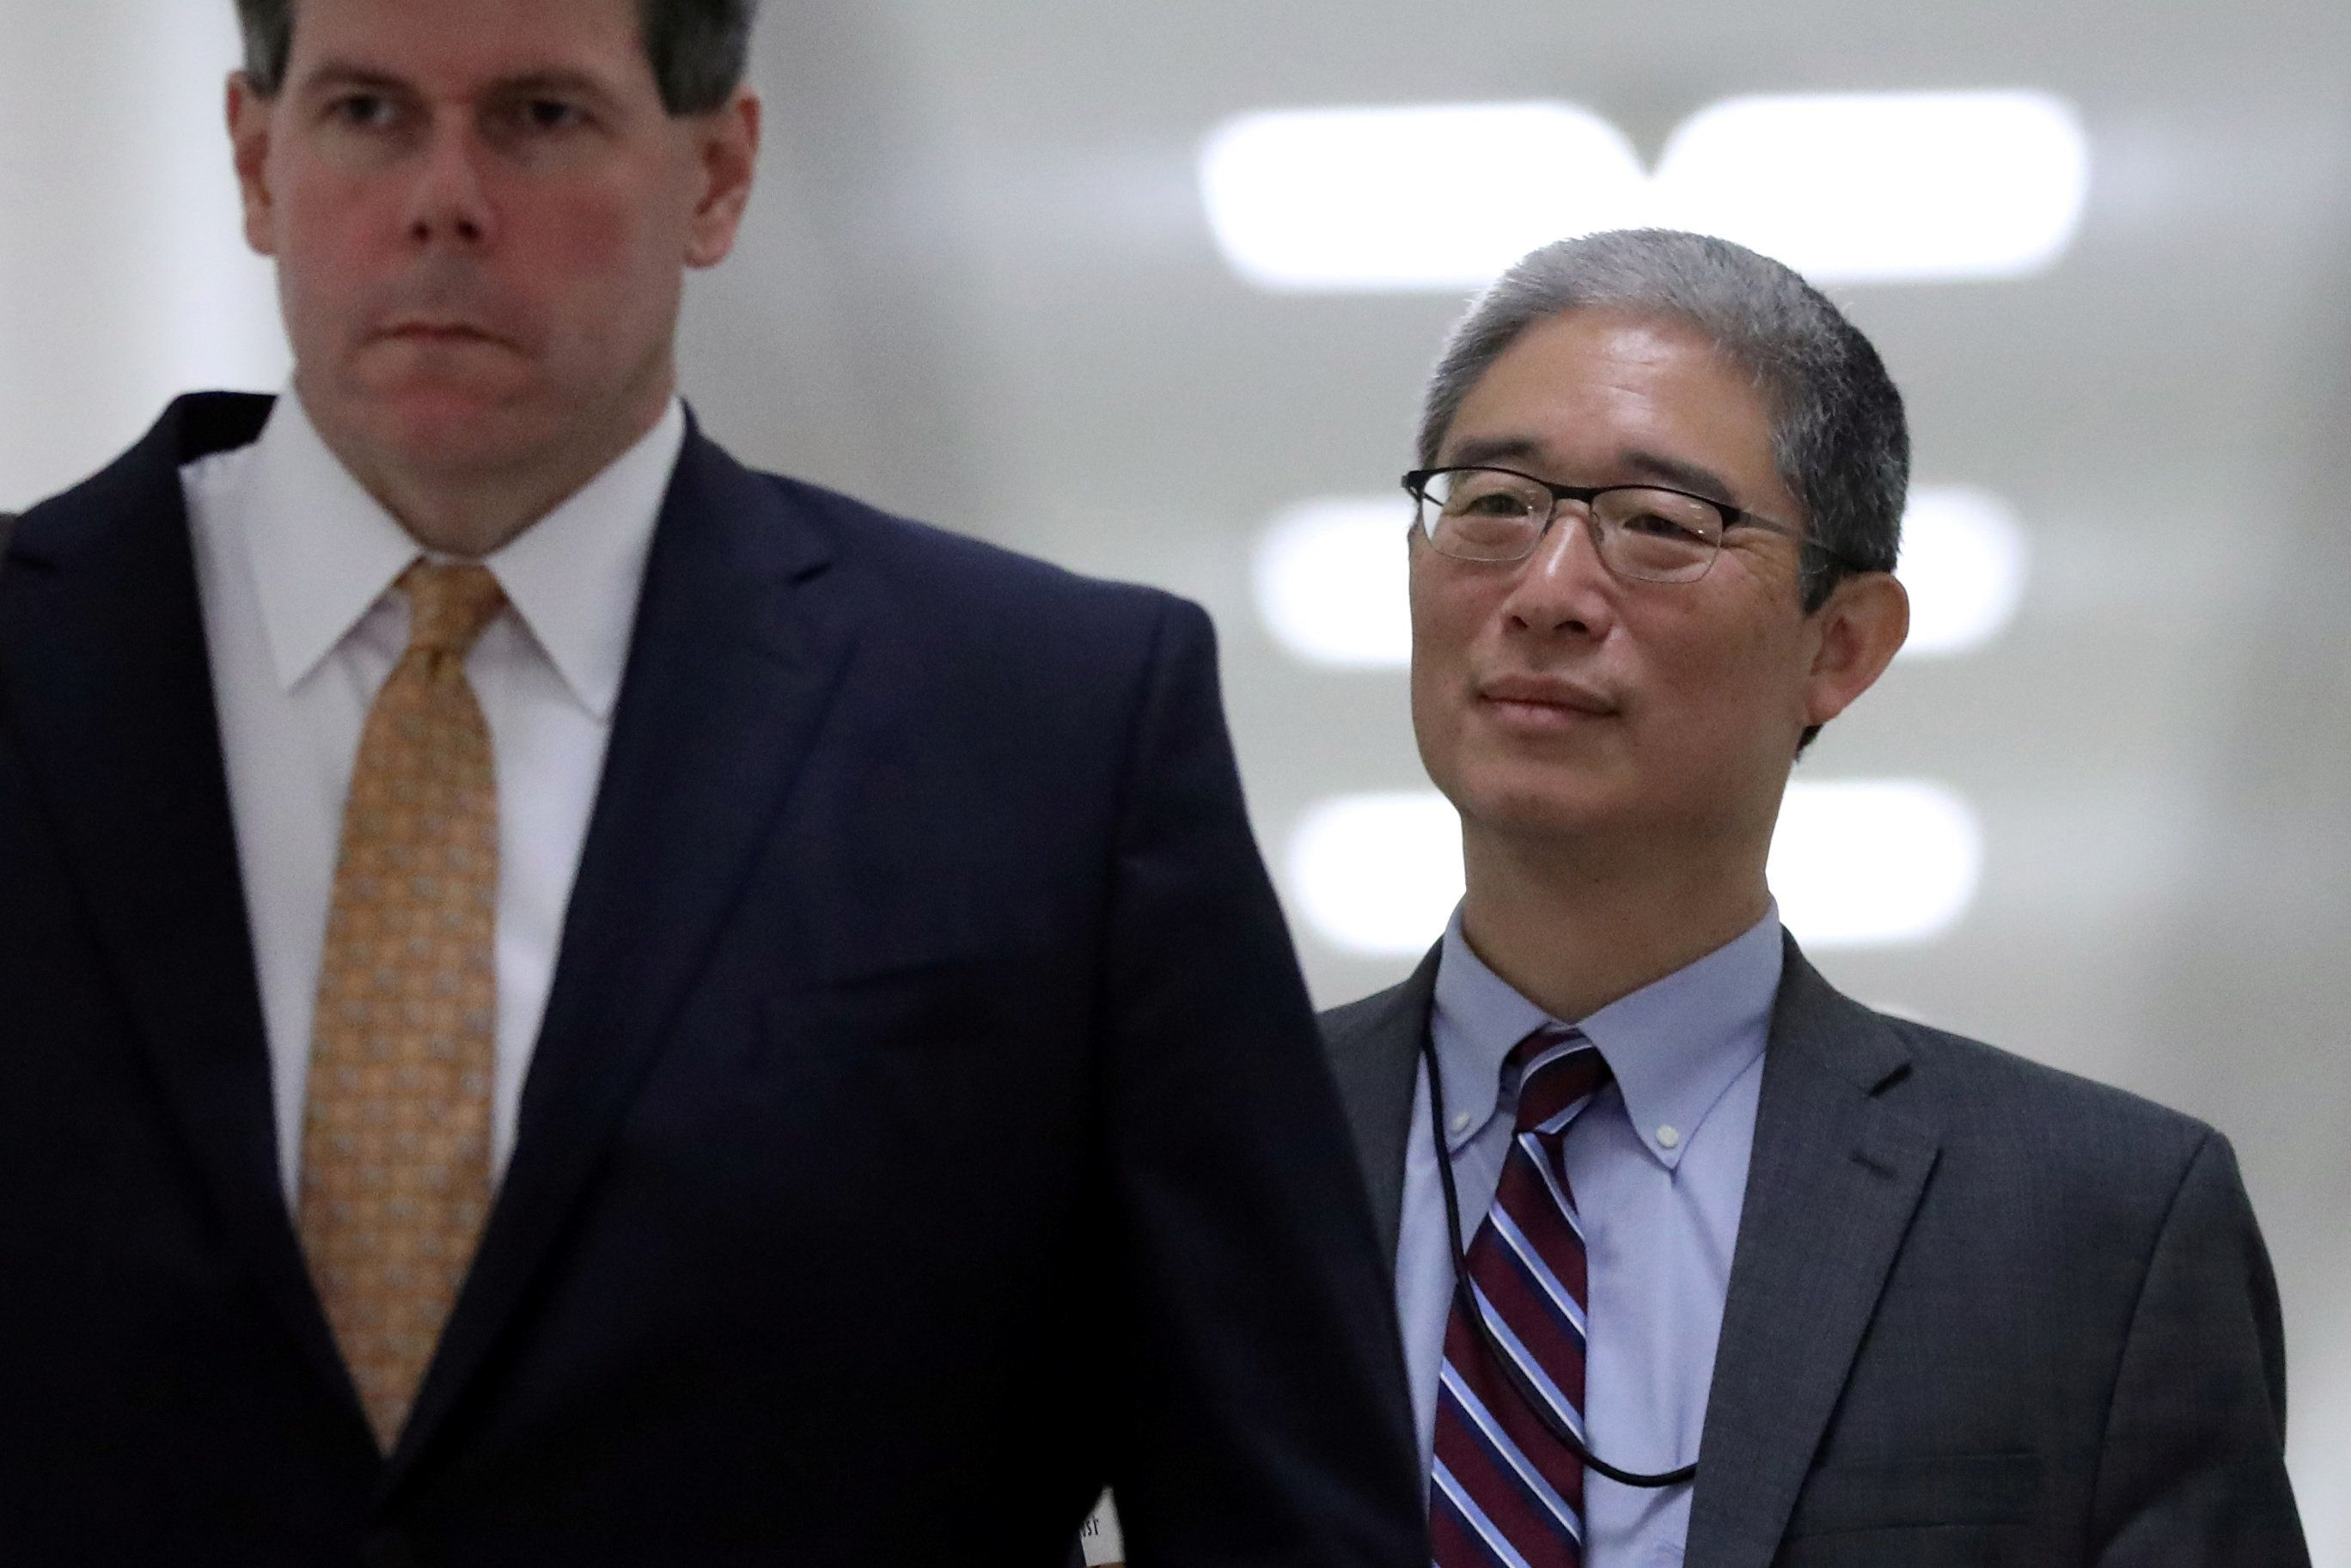 Who is Bruce Ohr, whose name keeps appearing in Trump's tweets?